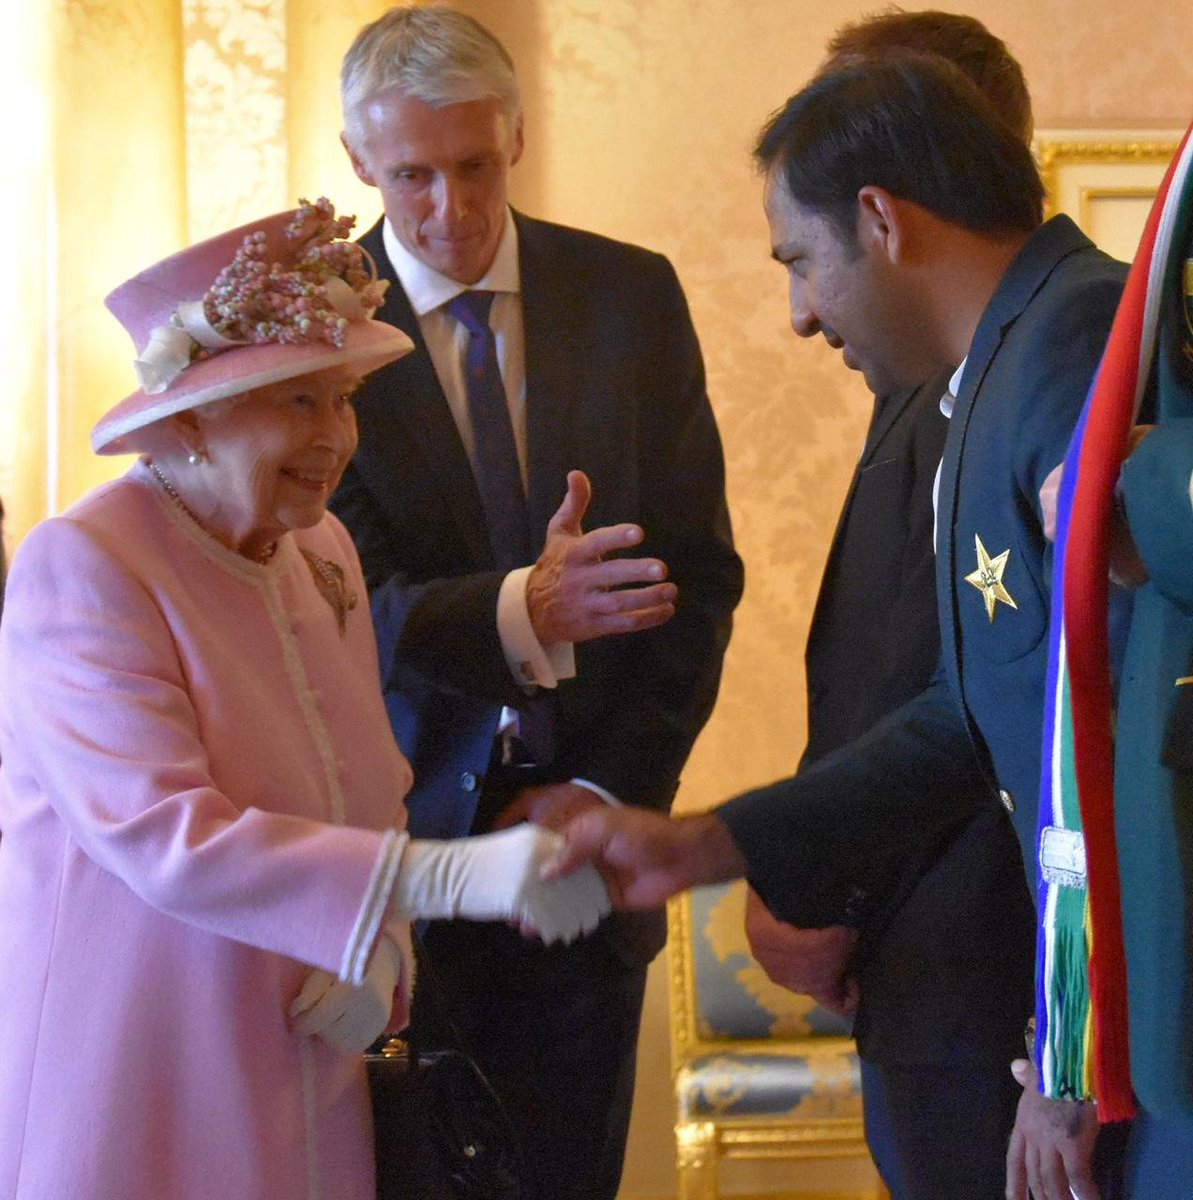 Earlier today at the Buckingham Palace!#CWC19 #WeHaveWeWill #SarfarazAhmed